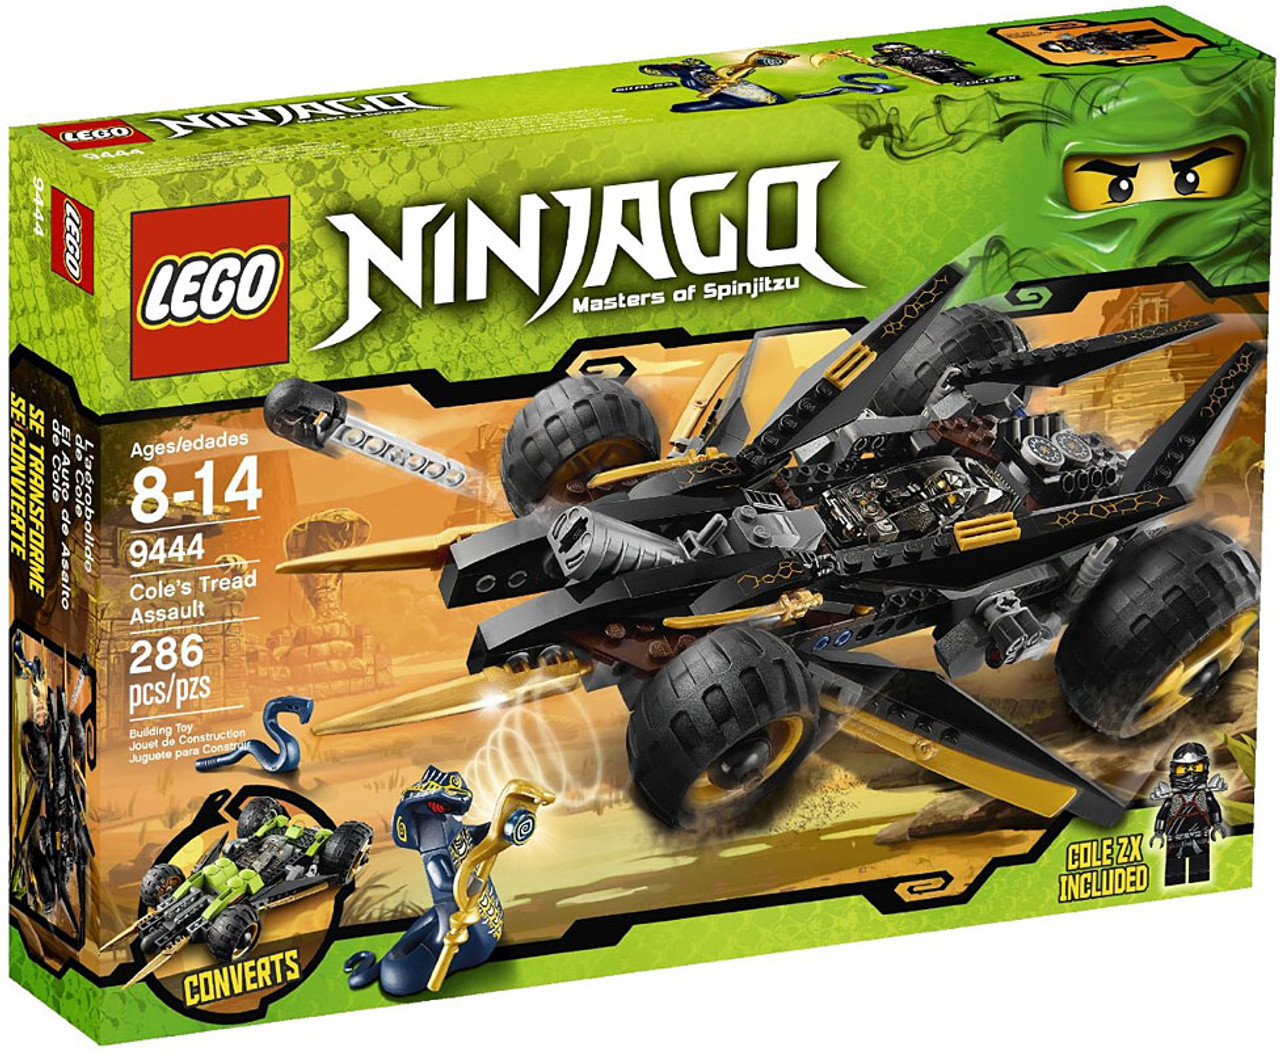 lego ninjago coles tread assault set 9444 damaged package. Black Bedroom Furniture Sets. Home Design Ideas